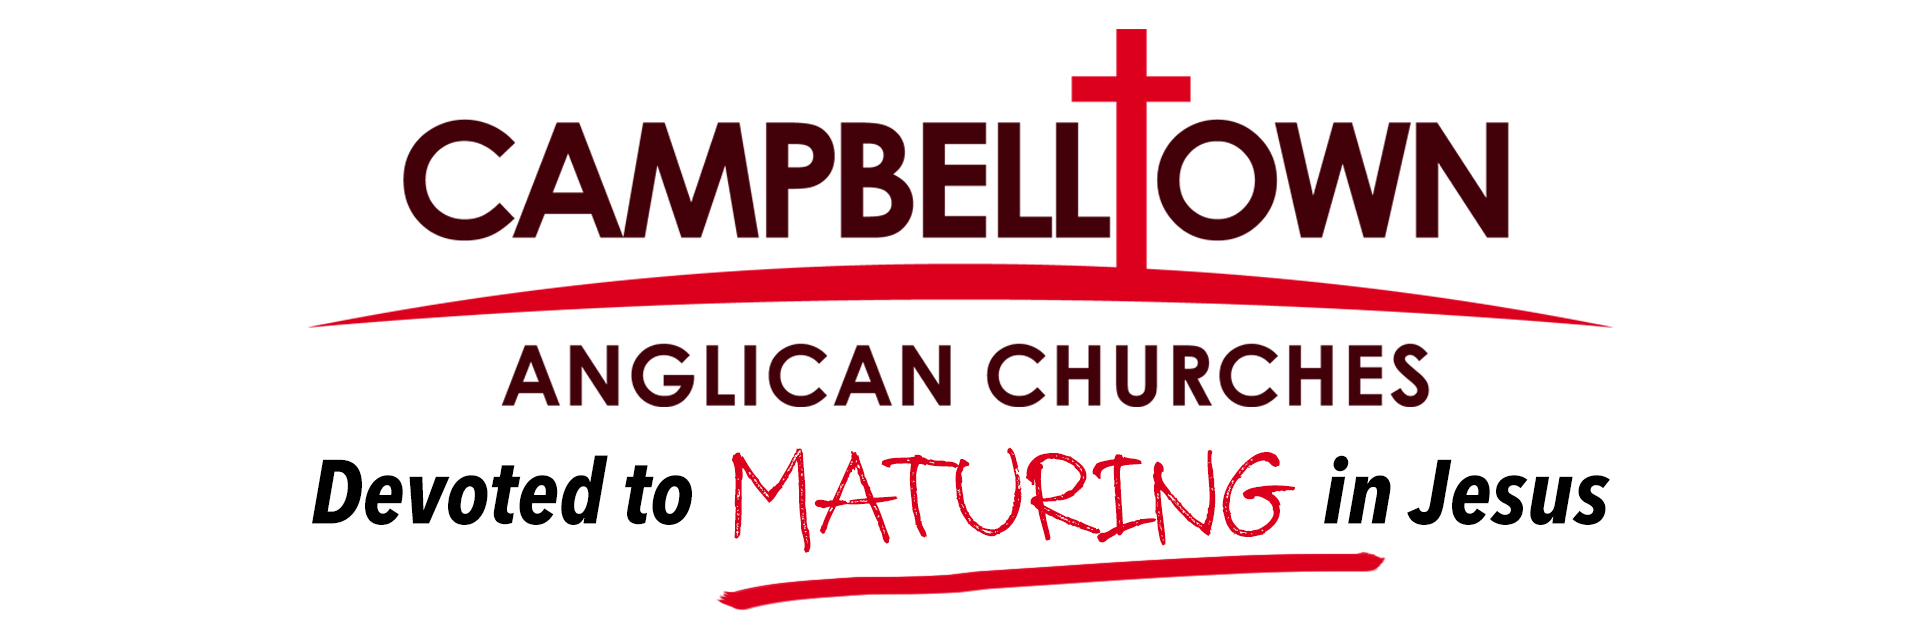 Maturing in Jesus - a vision of Campbelltown Angllican Churches